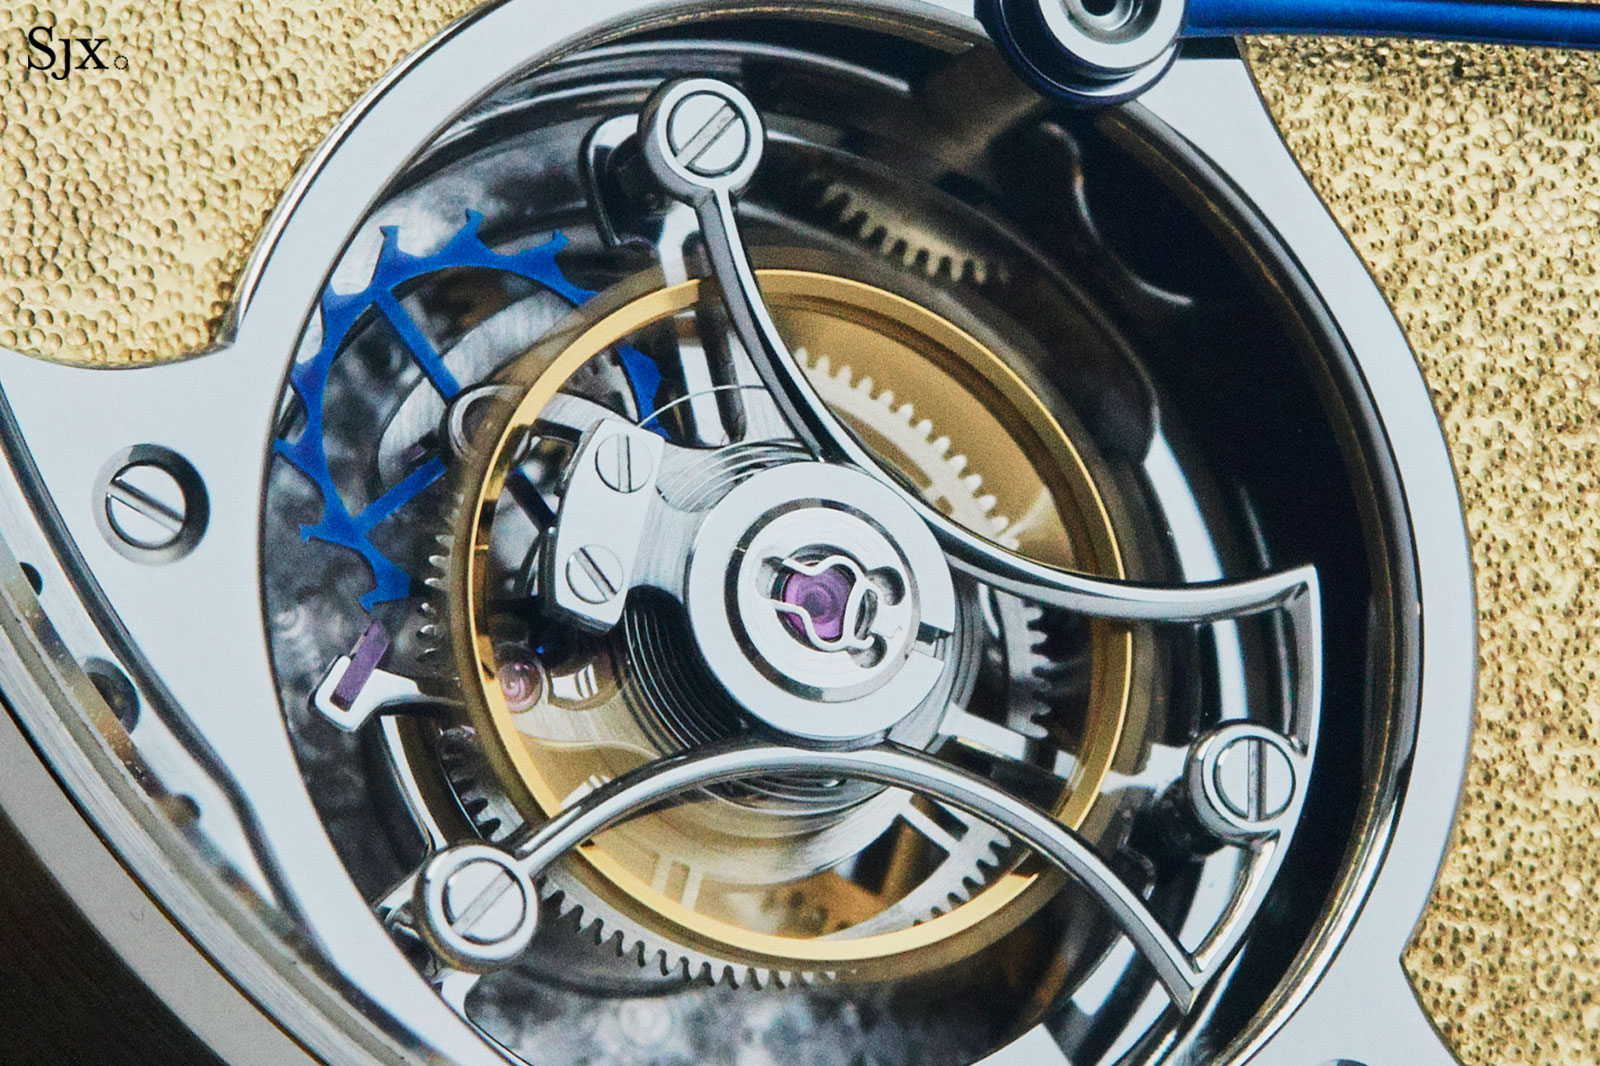 Akrivia AK-02 Tourbillon Hour Minute 7